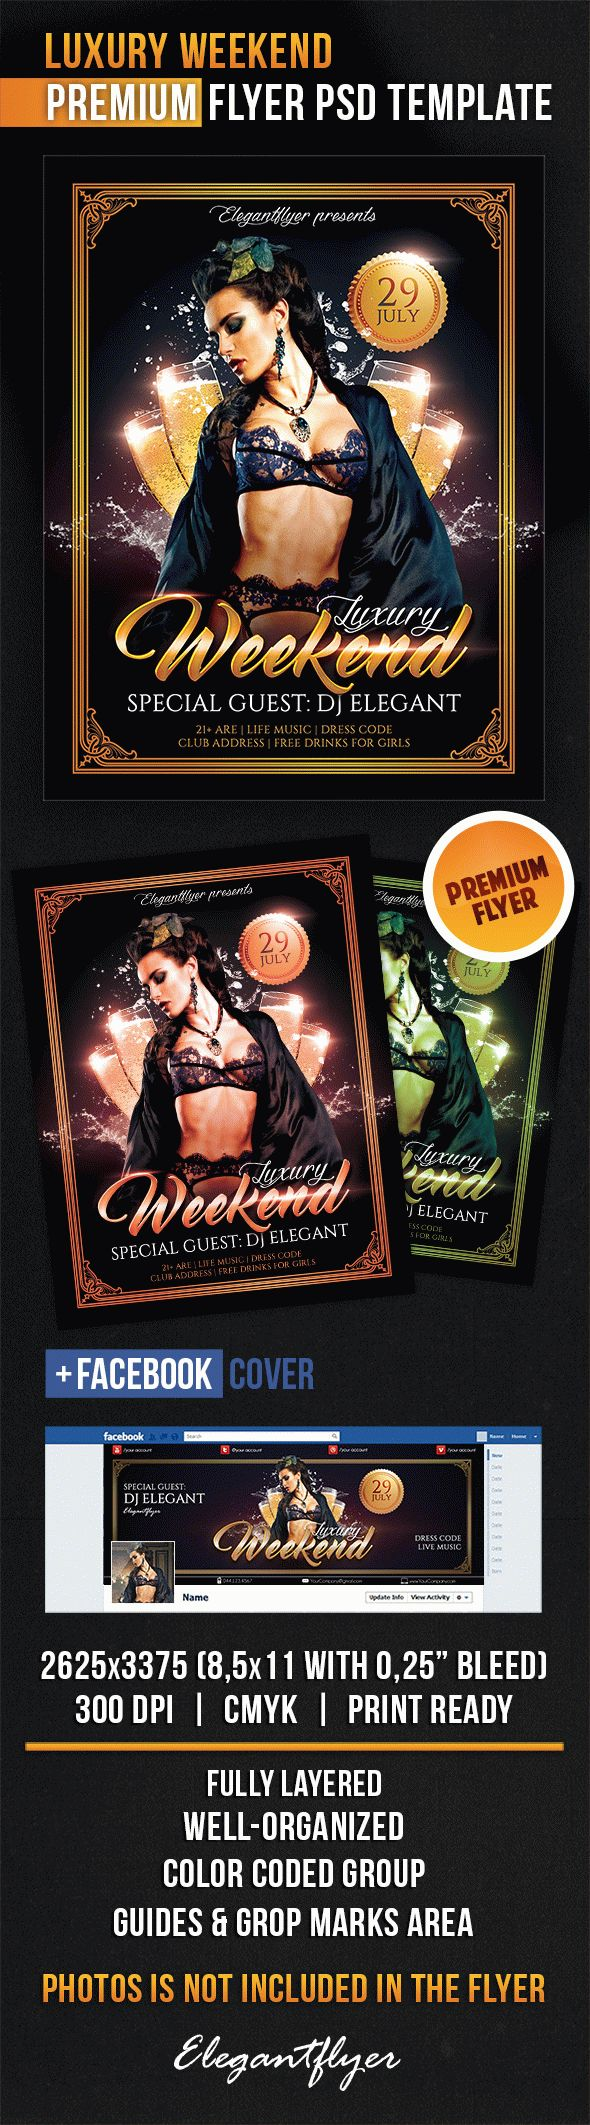 Luxury Weekend Flyer Template